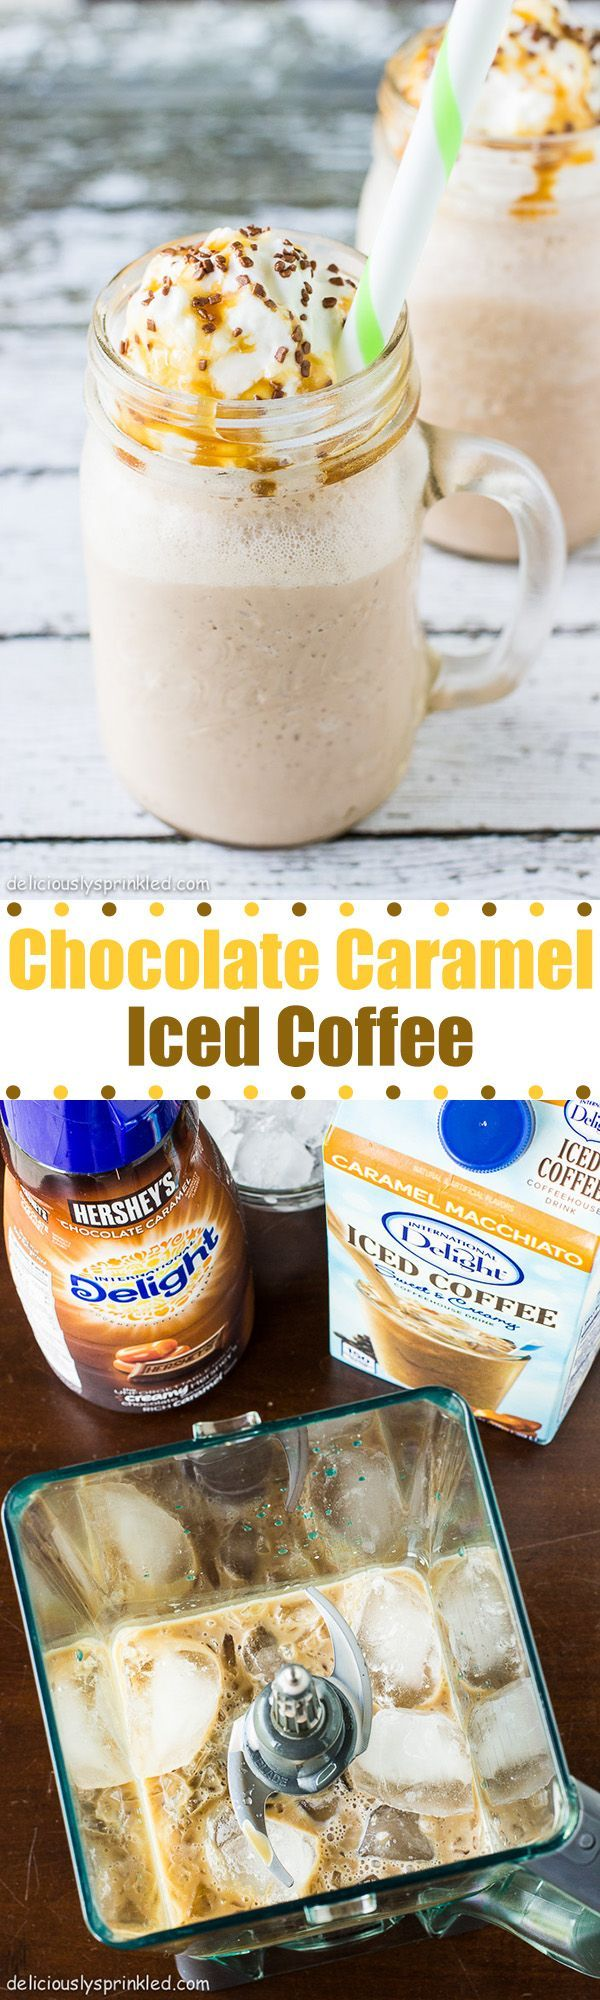 Best 20+ Espresso k cups ideas on Pinterest | Coffee k cups, Drink ...